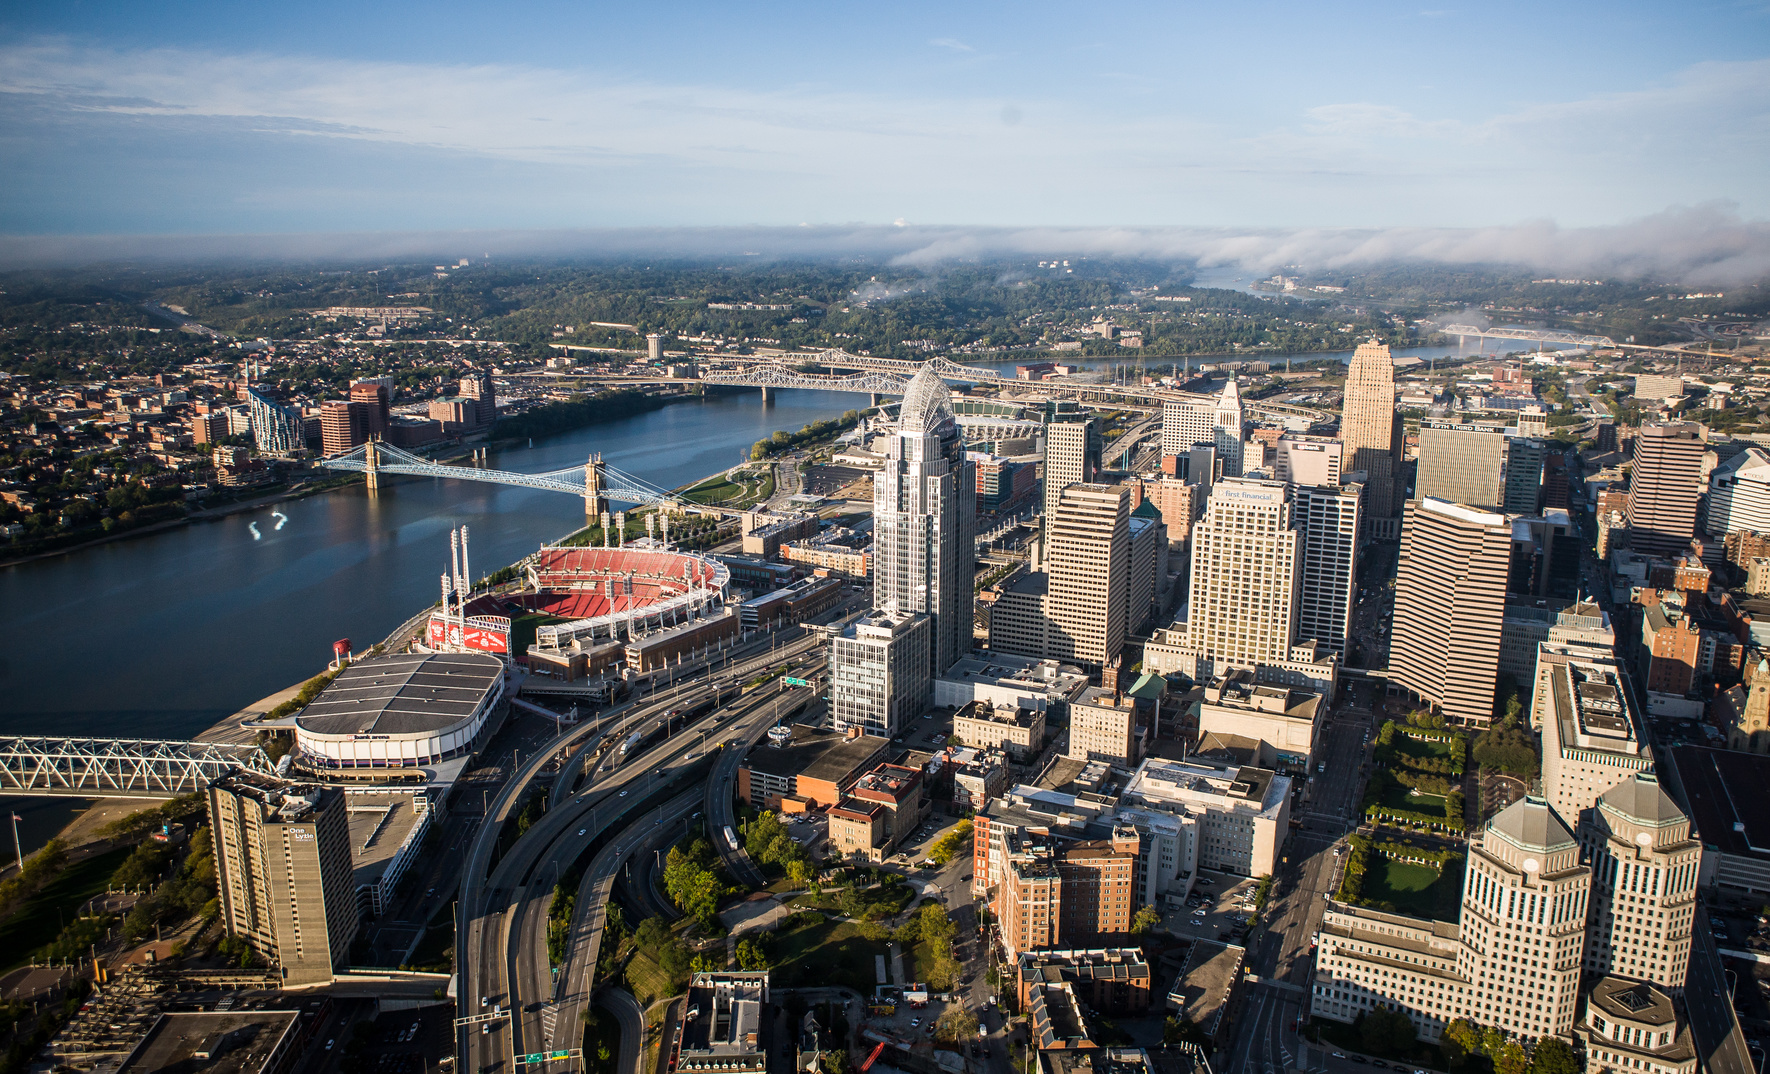 7 Fun Things to Do With Your Aging Parent Around Cincinnati This Summer